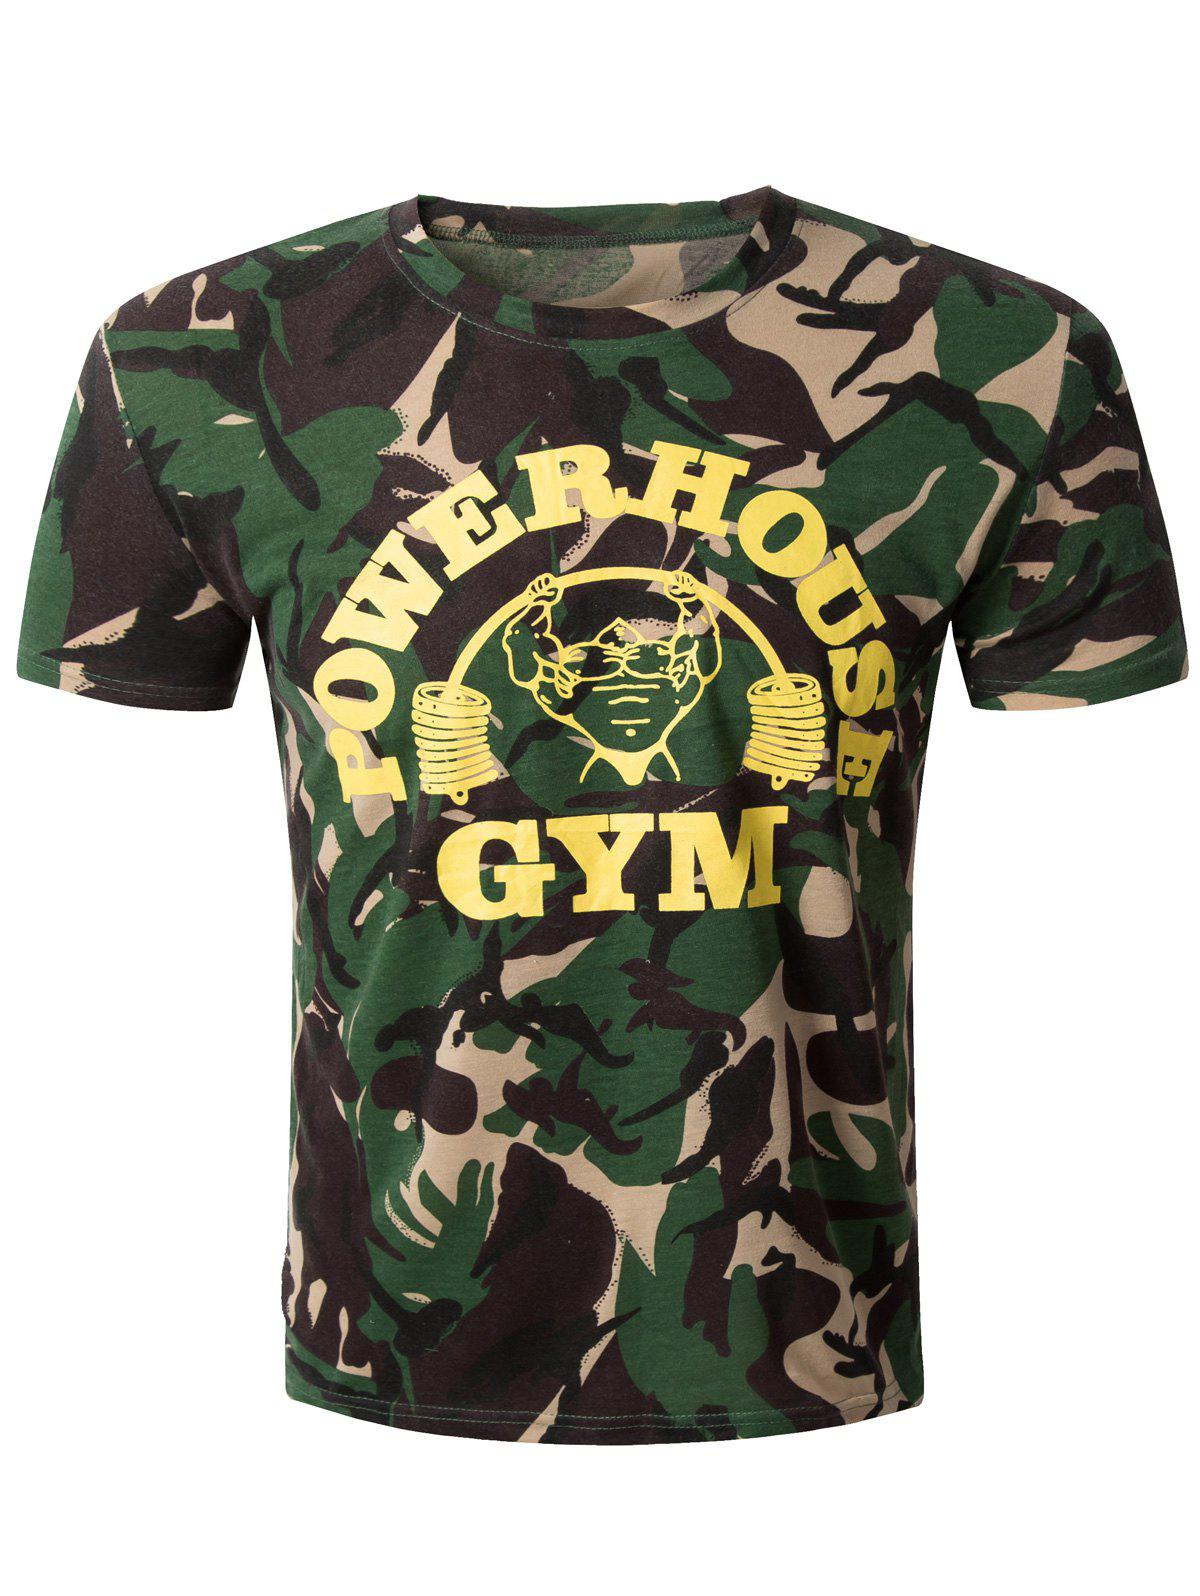 Casual Camo Round Collar Short Sleeve Men's T-Shirt - CAMOUFLAGE L